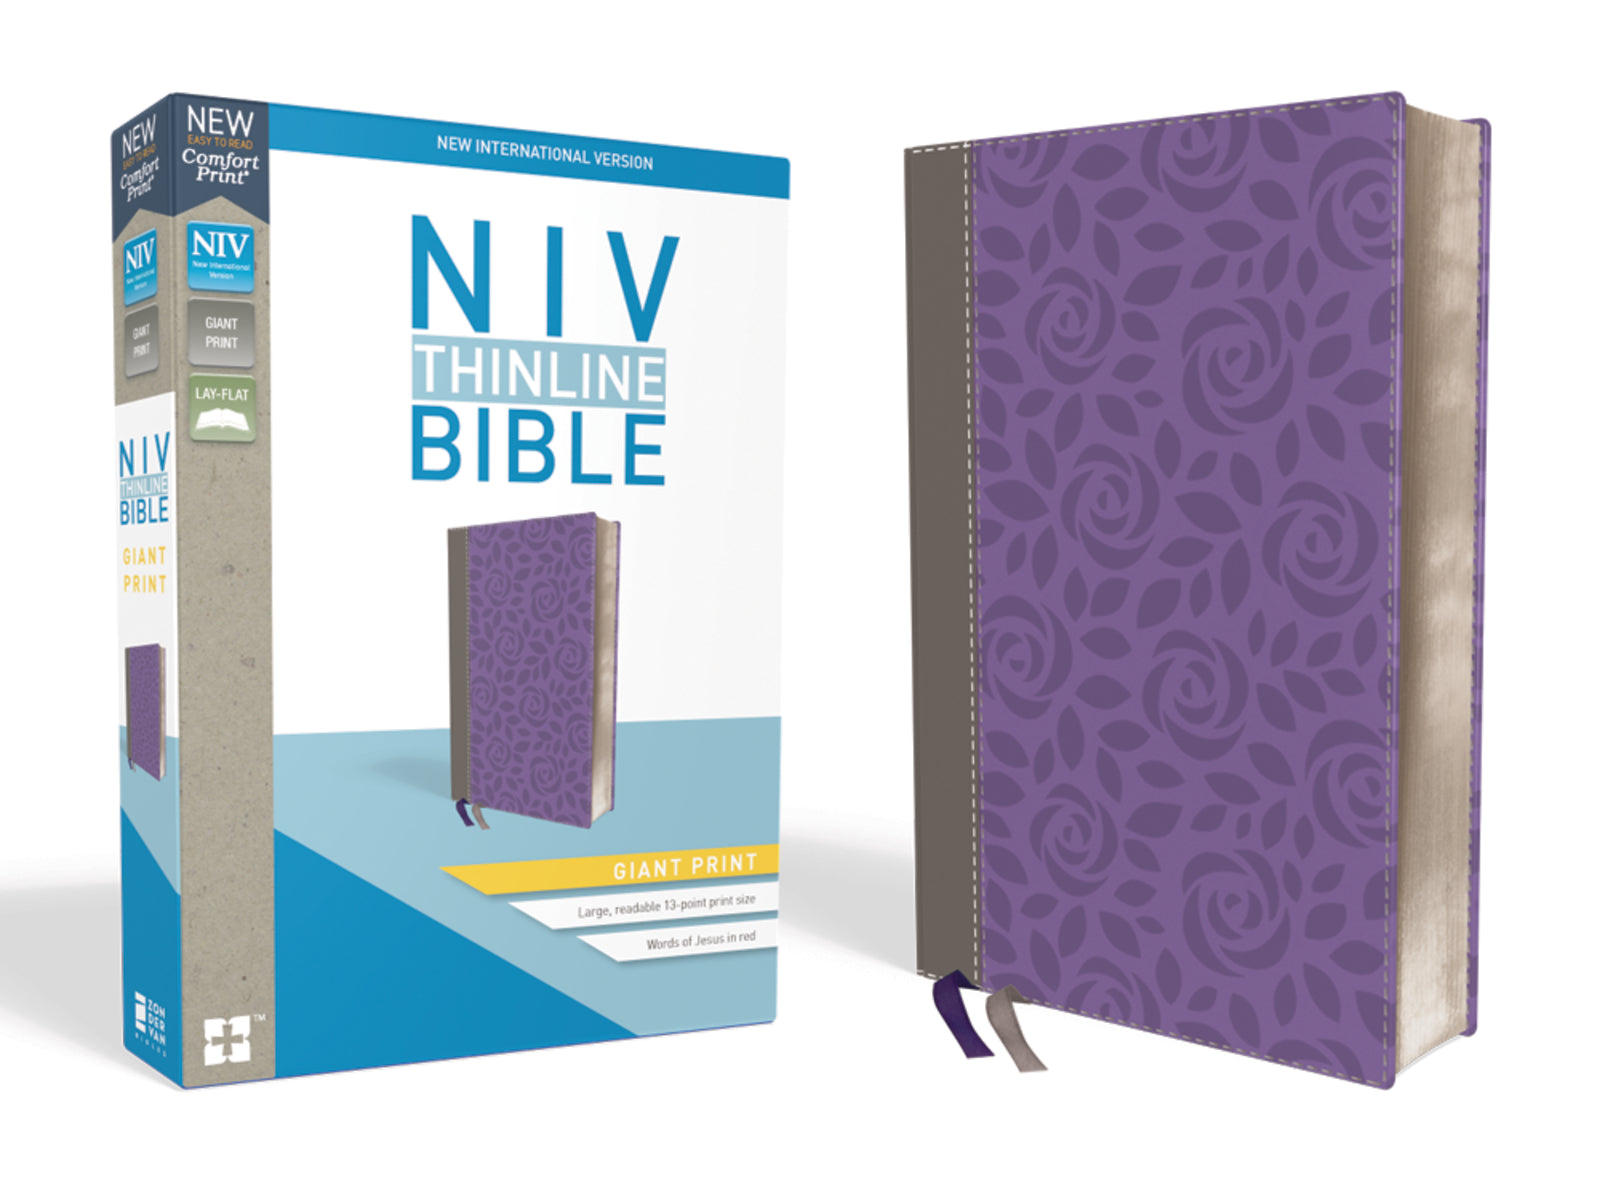 NIV Thinline Bible Giant Print Comfort-Purple/ Gray